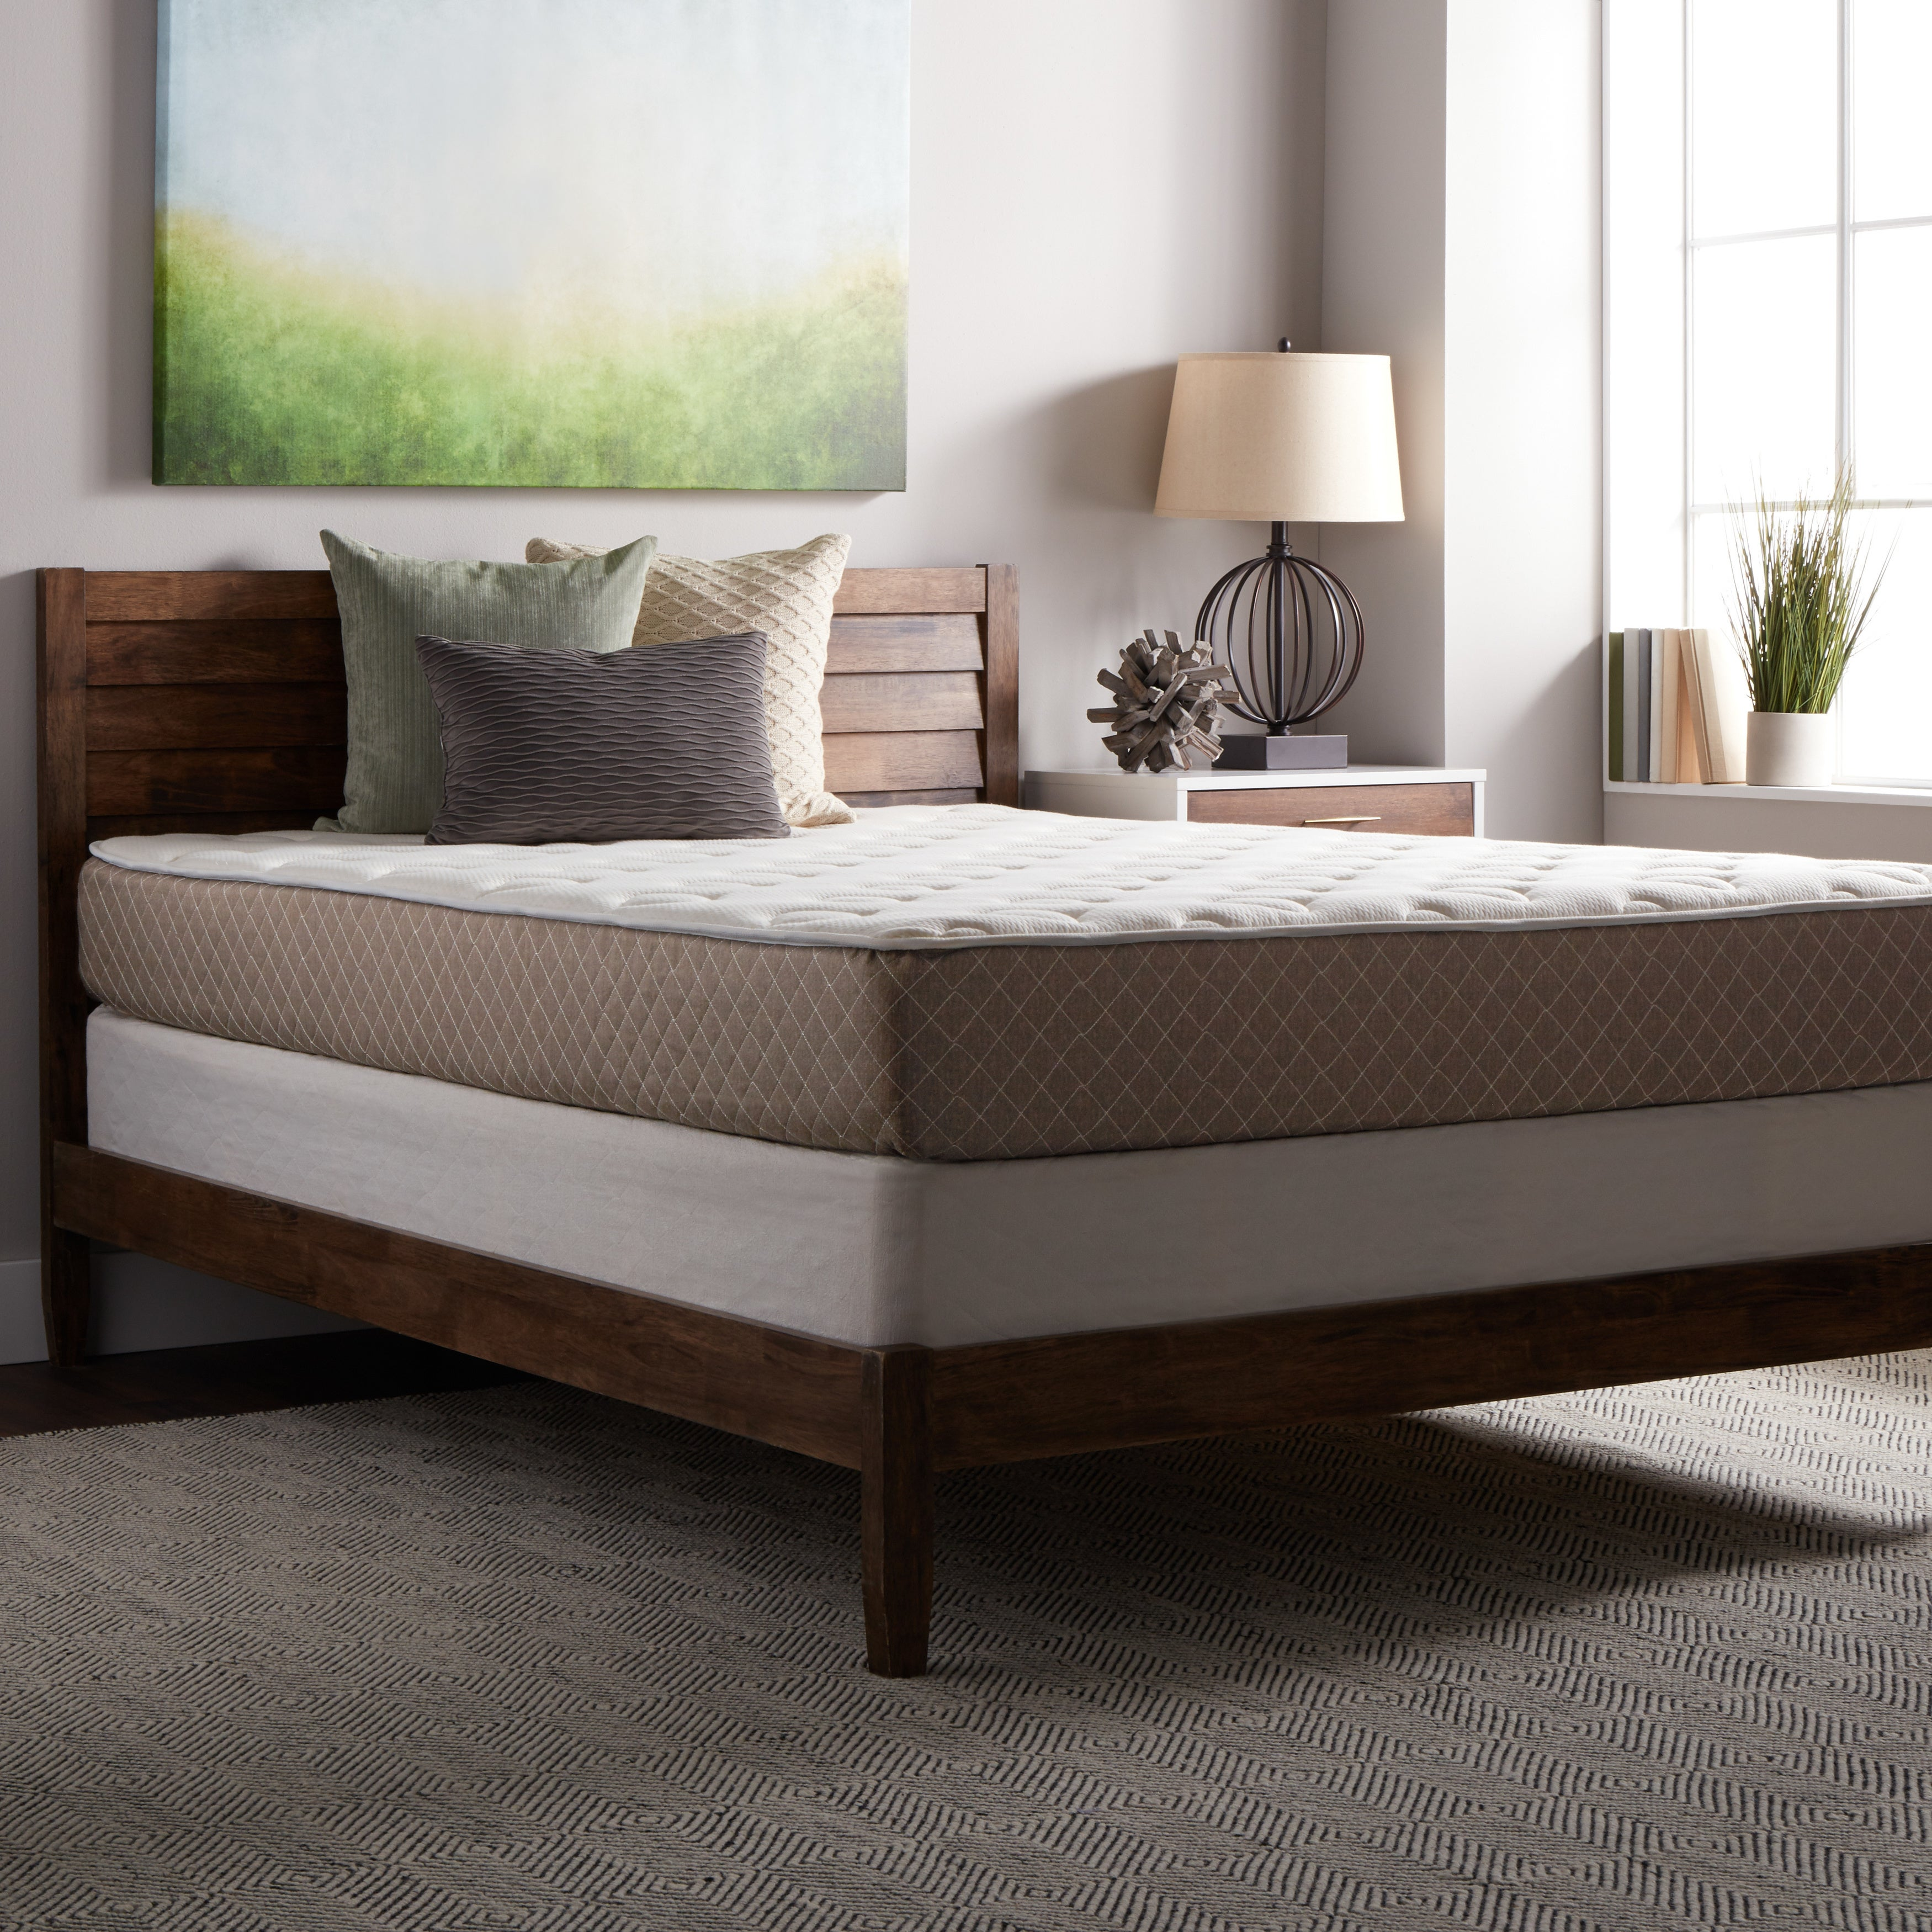 Select Luxury Medium-firm Quilted-top 10-inch Queen Size ...